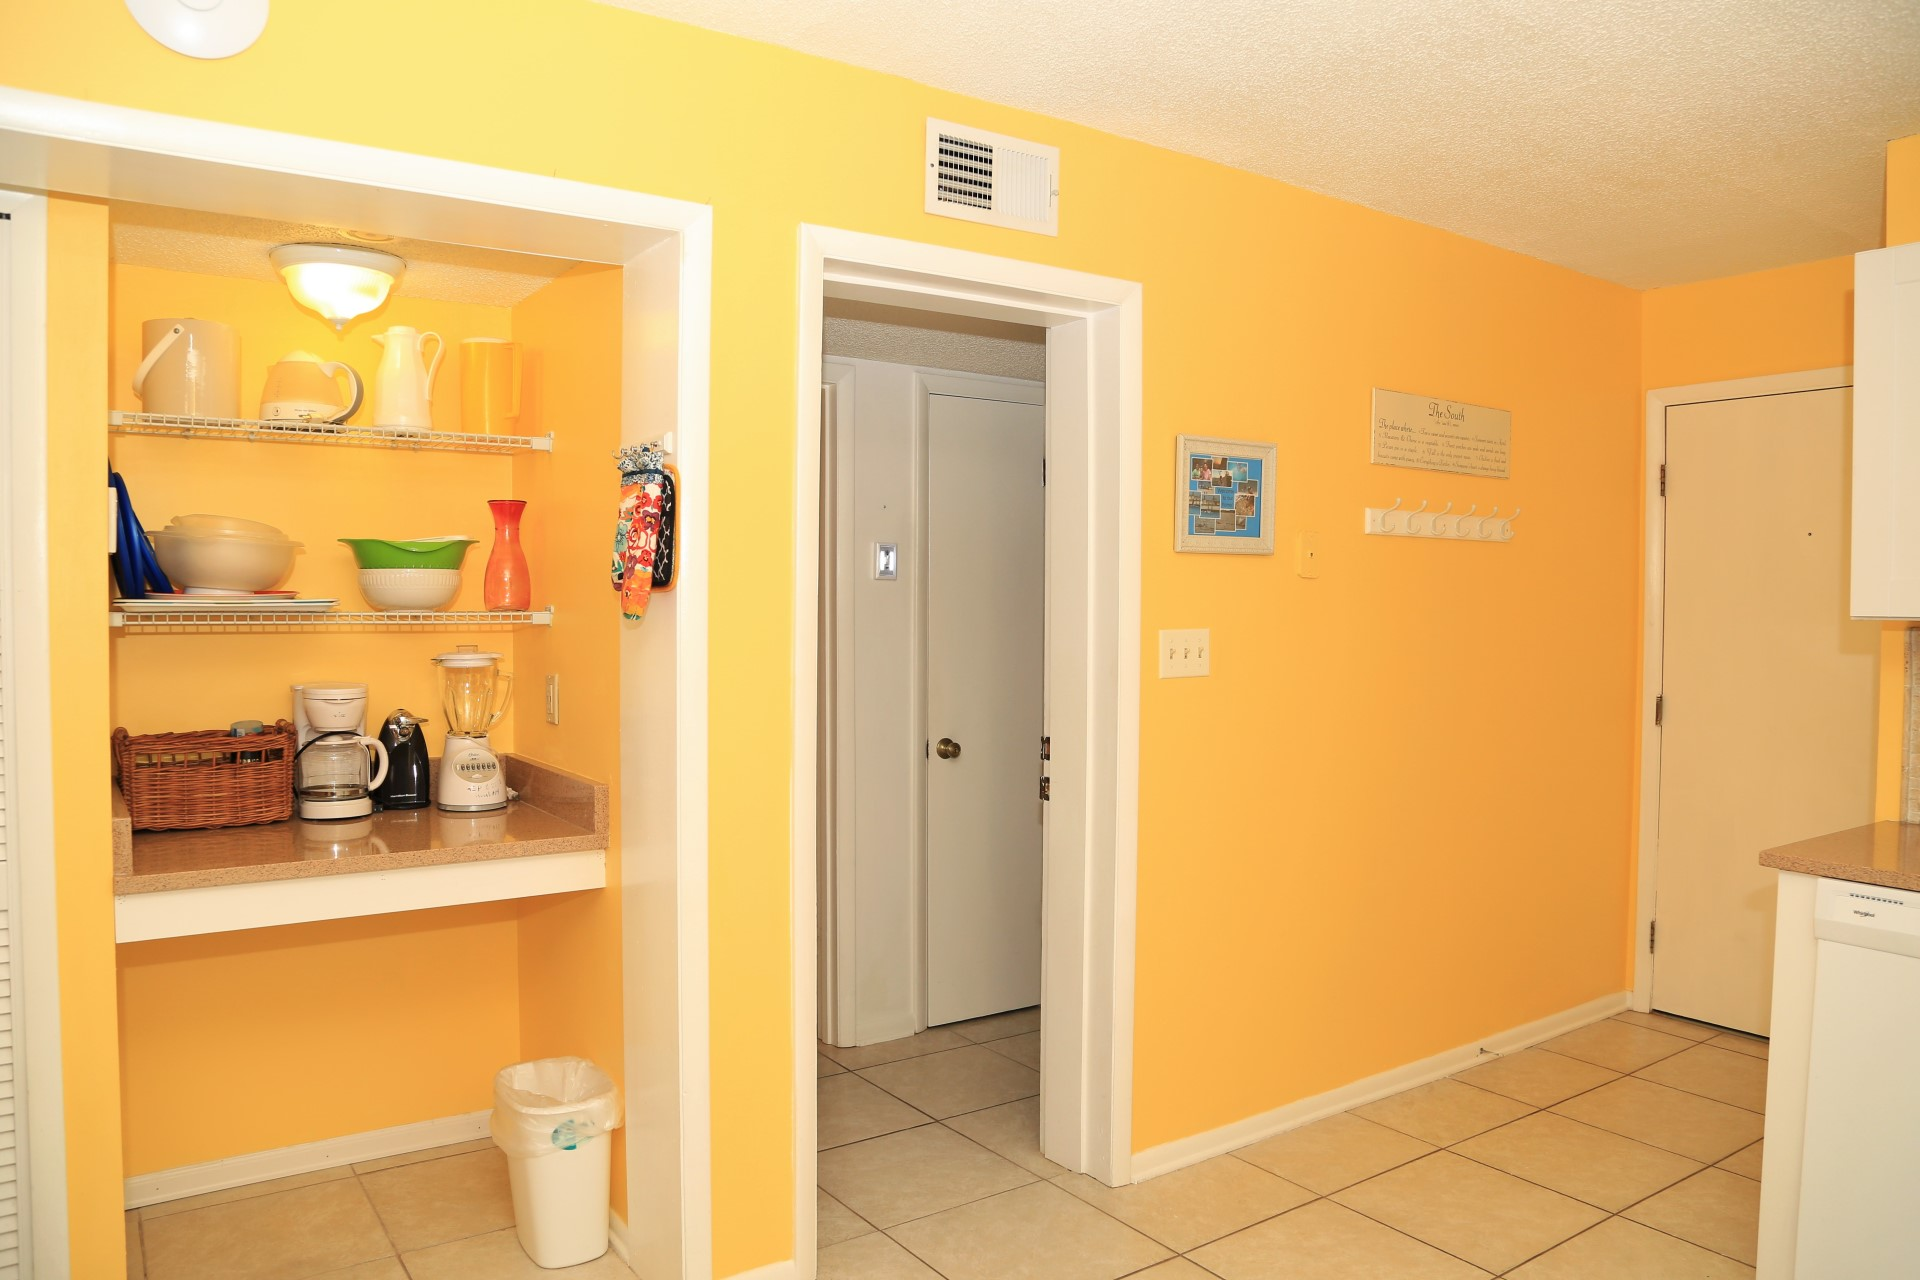 Extra counter and storage space for groceries located by the